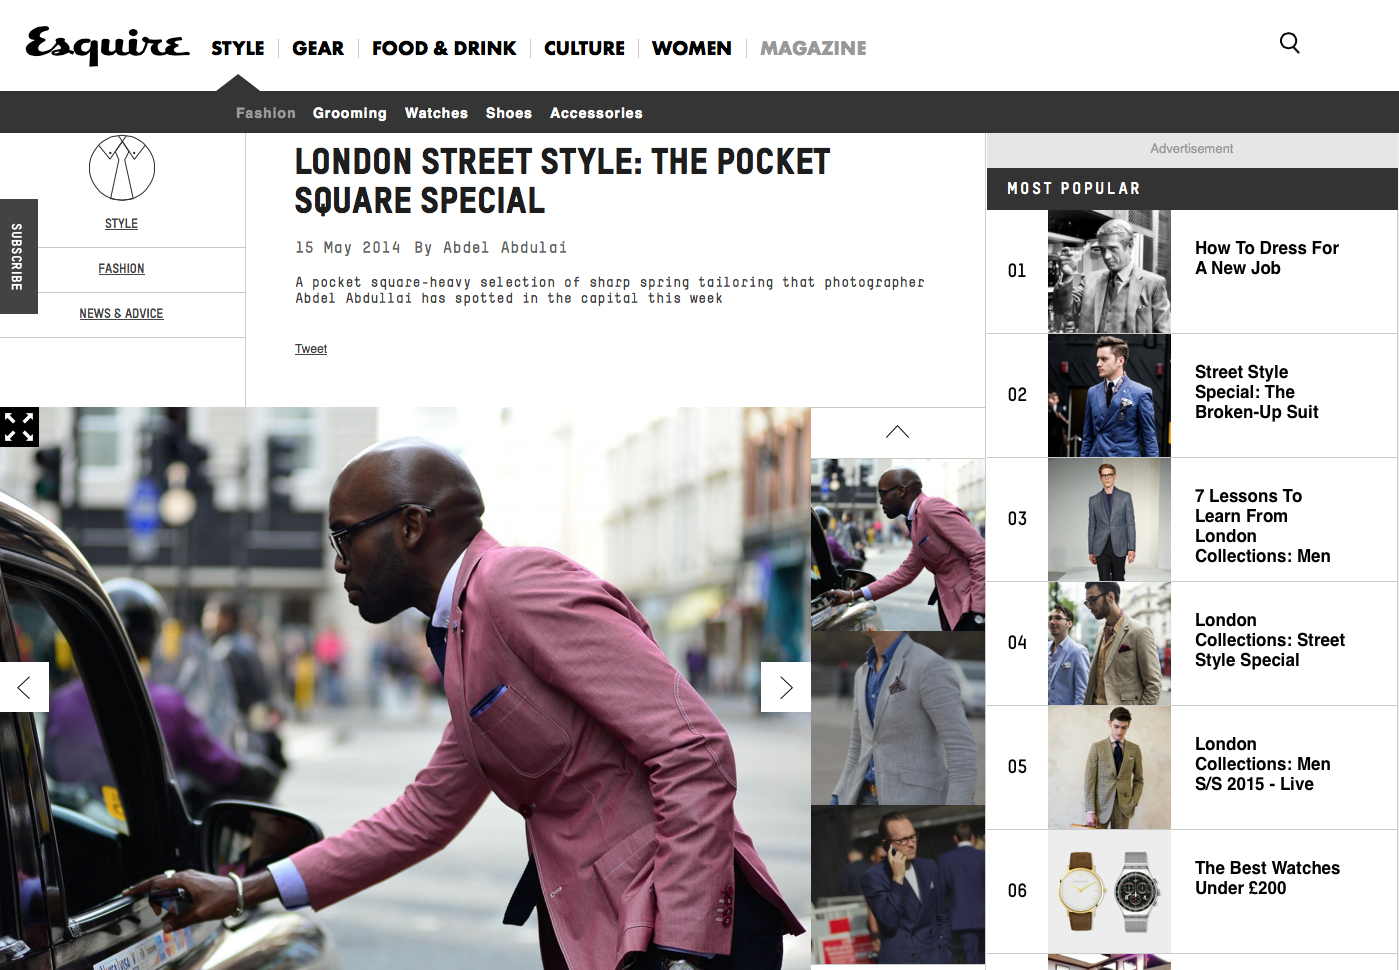 London Street Style: The Pocket Square Special